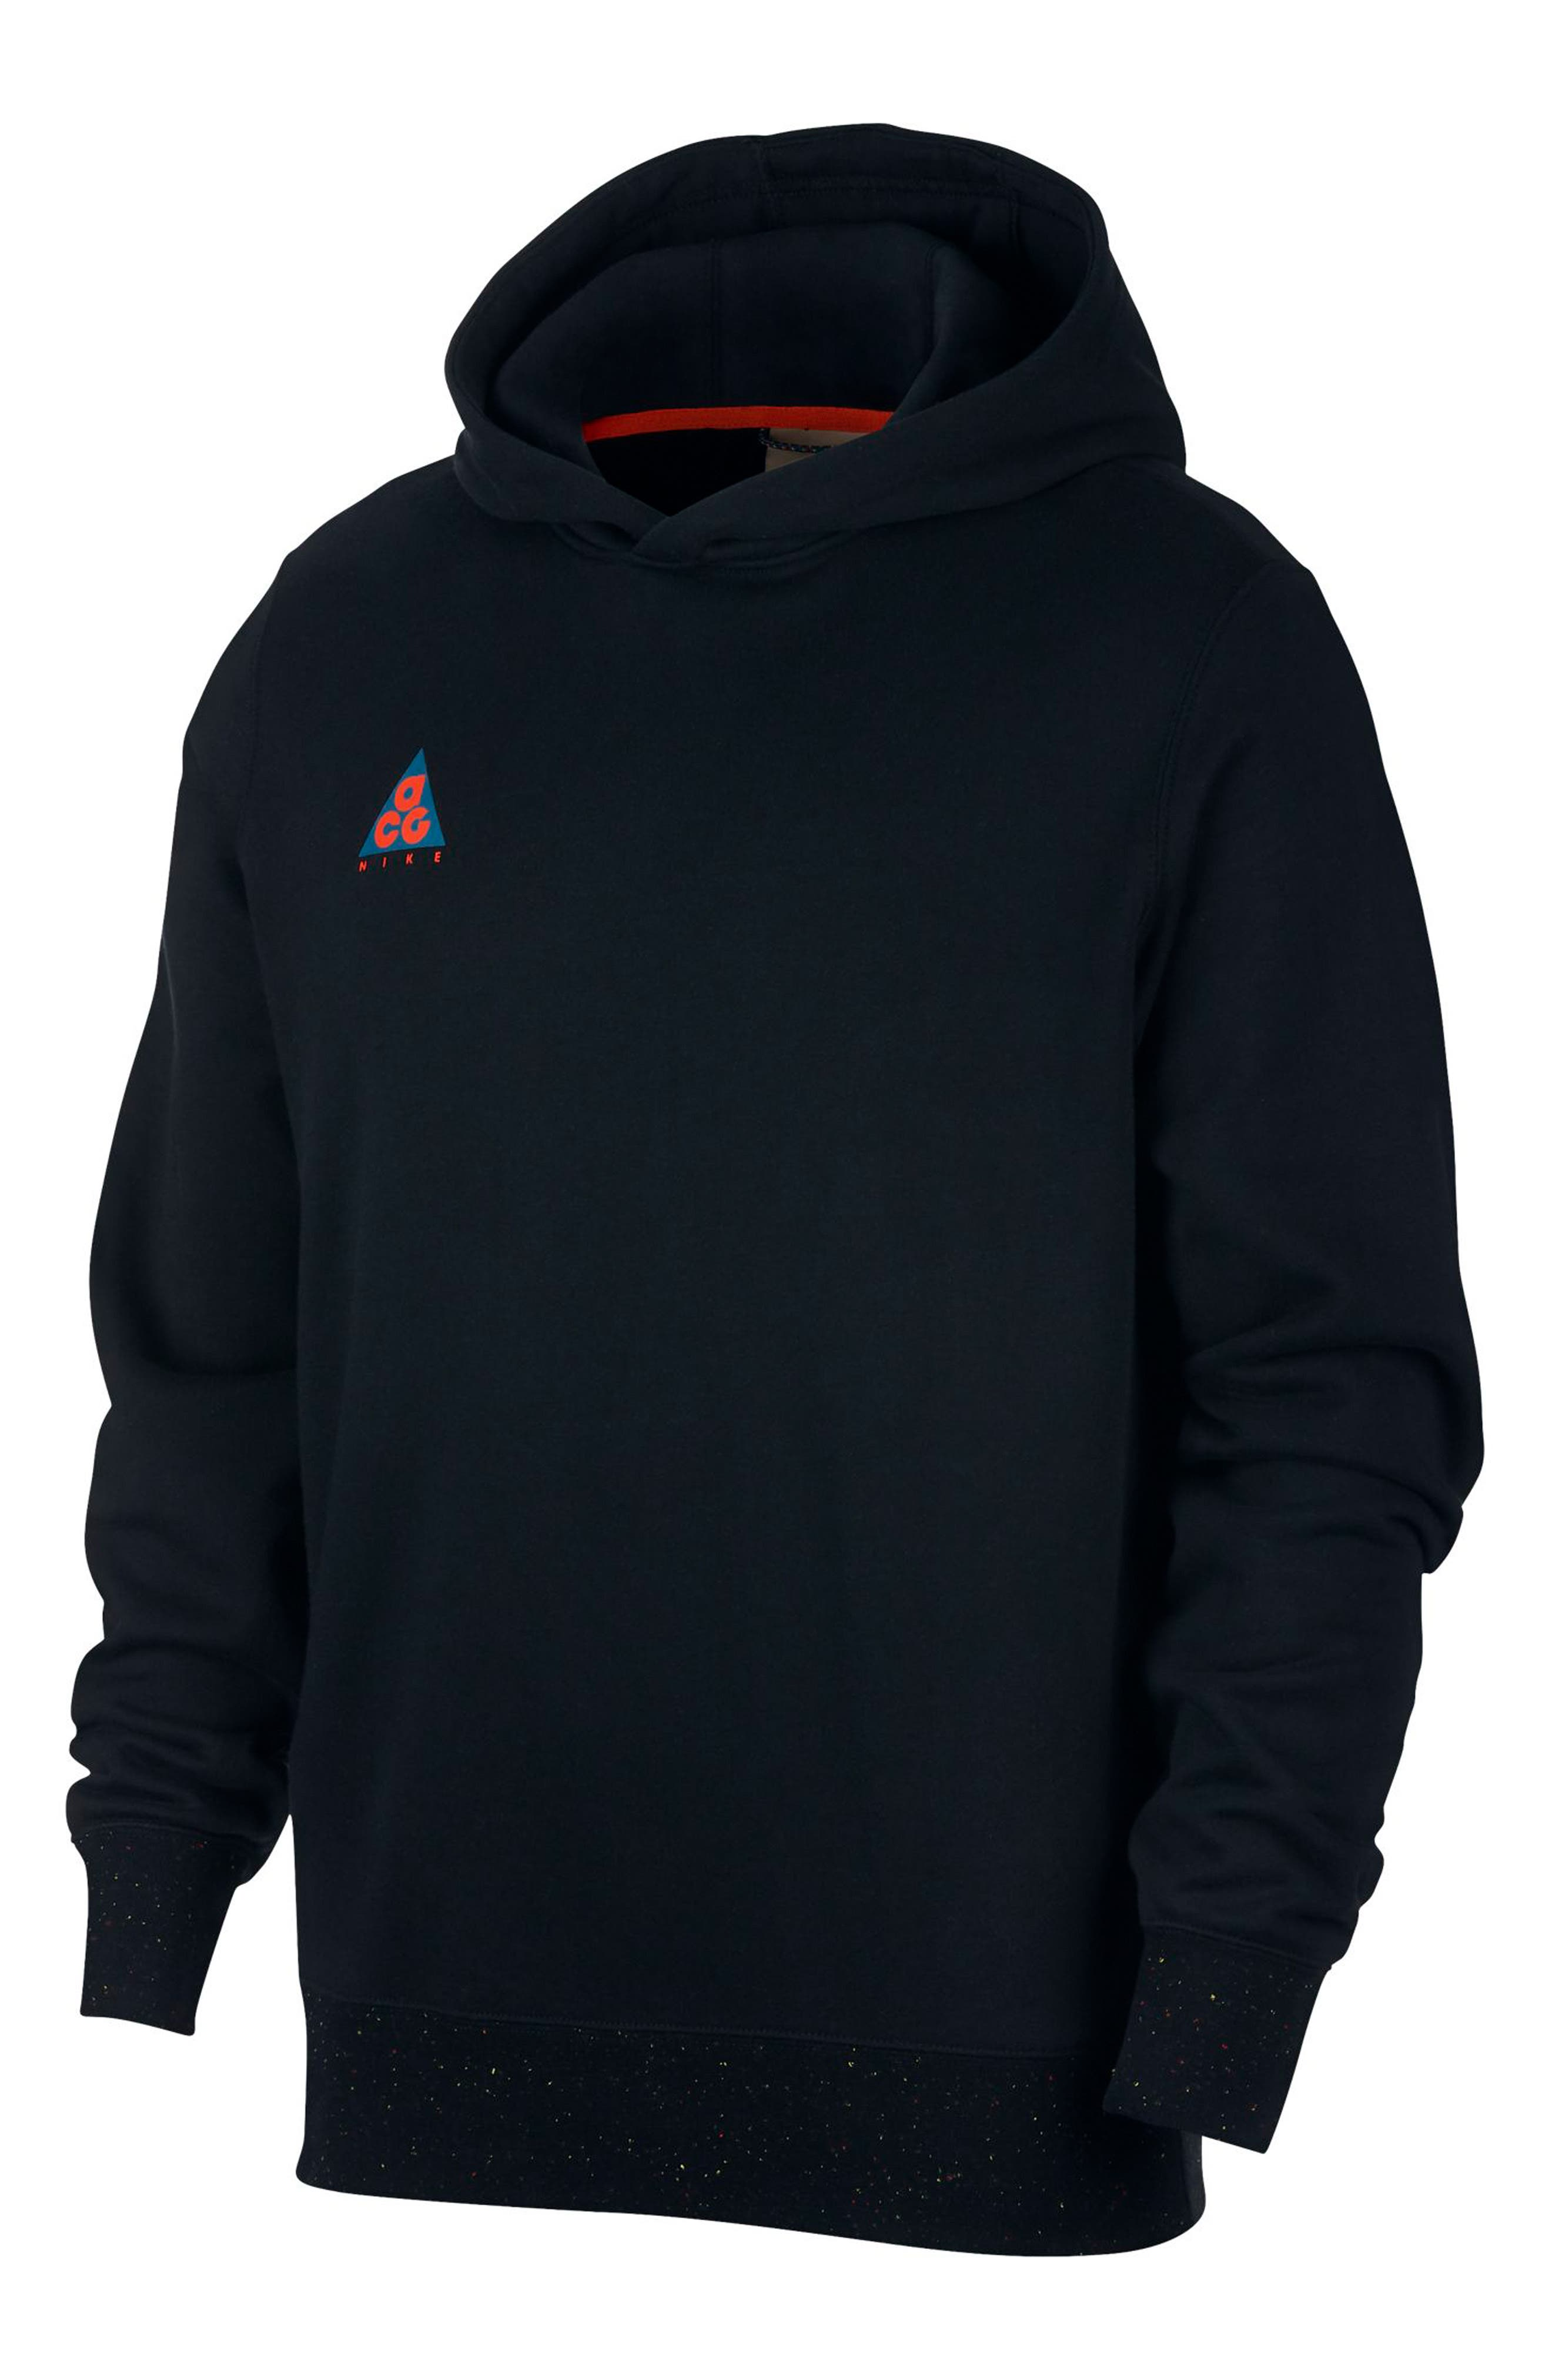 Sportswear ACG Pullover Hoodie,                             Alternate thumbnail 3, color,                             010